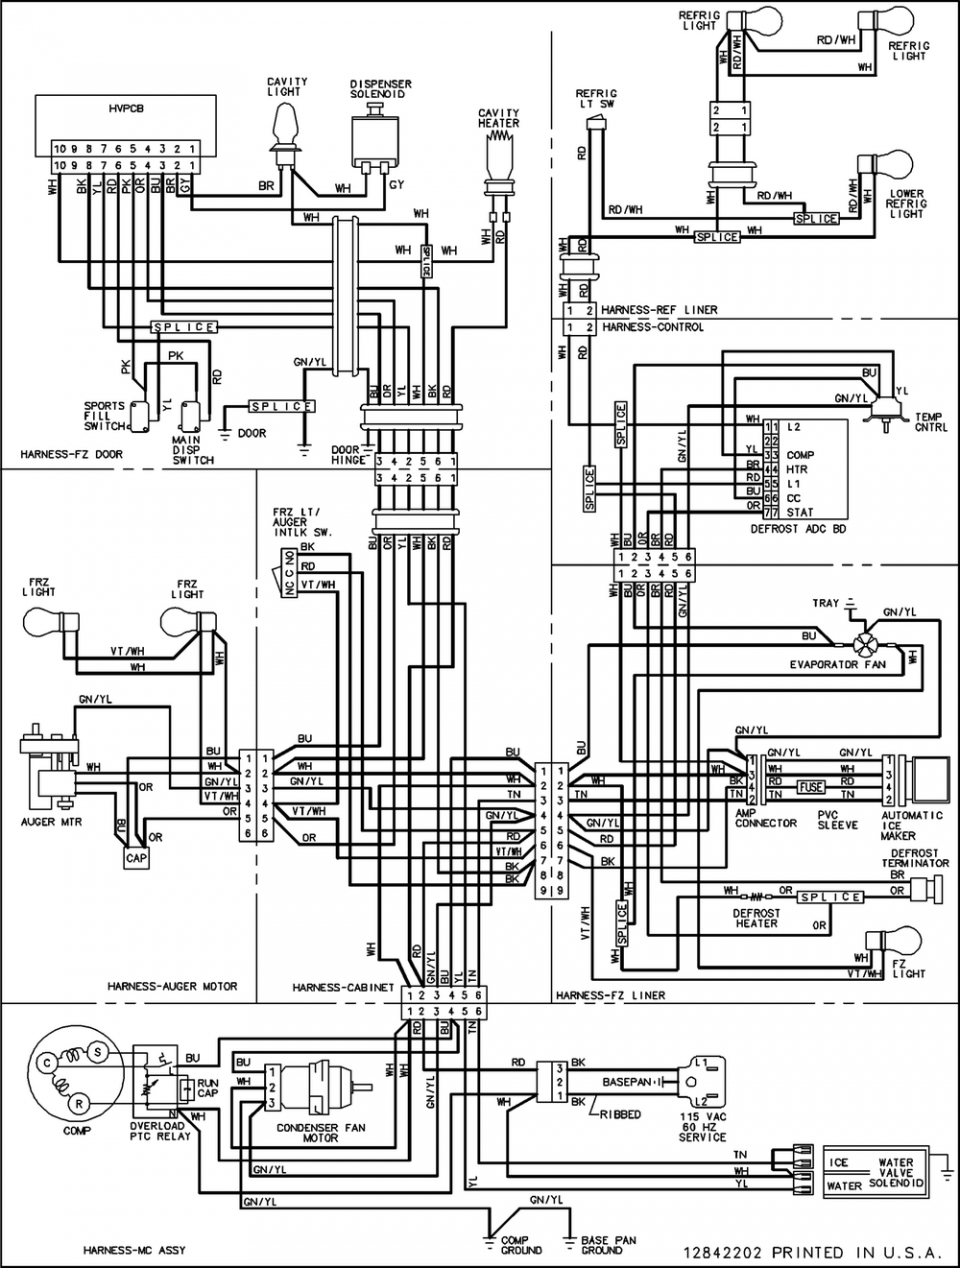 amana ptac wiring diagram Collection-Amana Ptac Wiring Diagram Fresh Diagrama Ptac Sleeve Installation Instructions Wired thermostat 1-l